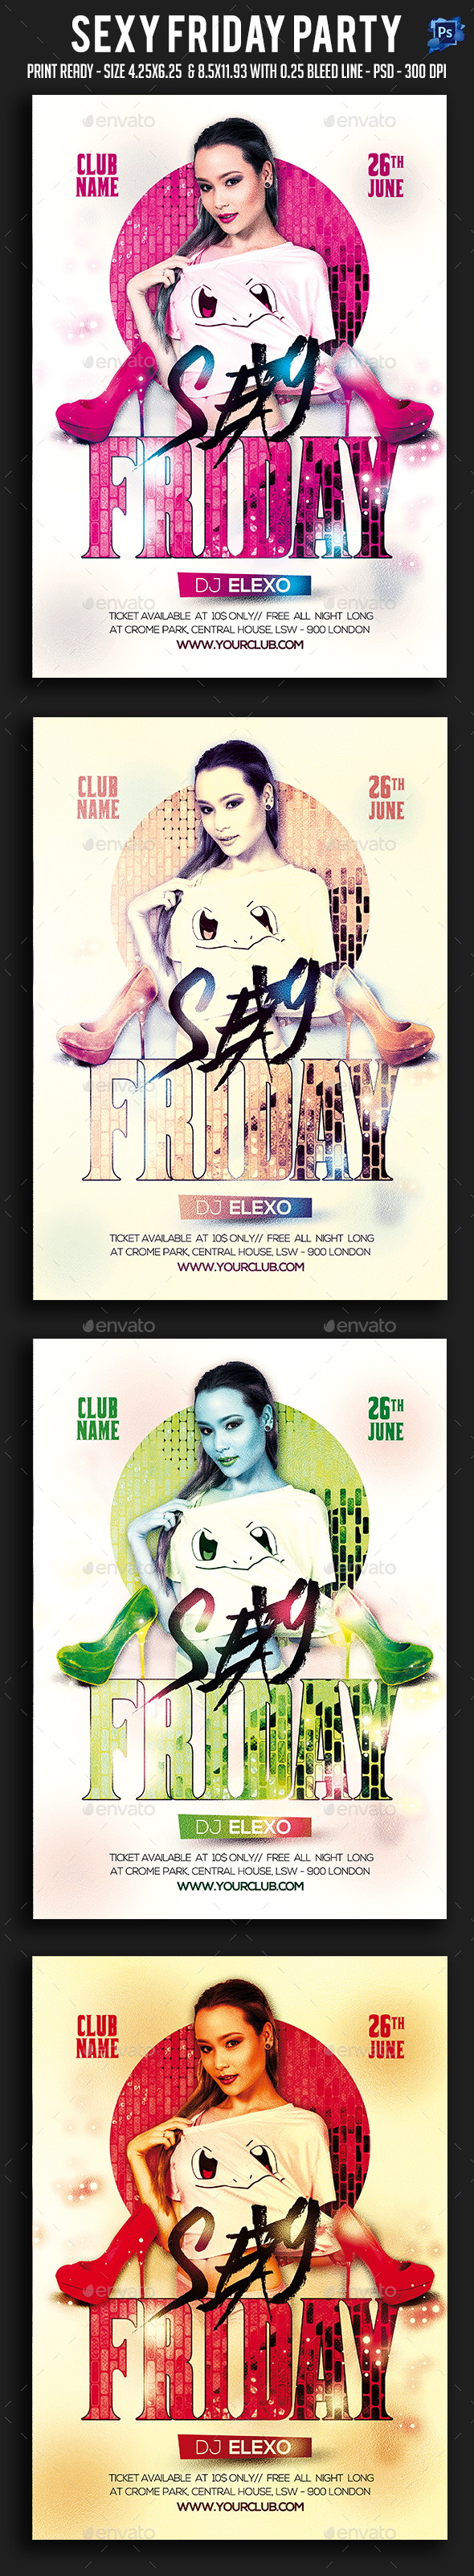 Sexy Friday Party Flyer - Clubs & Parties Events